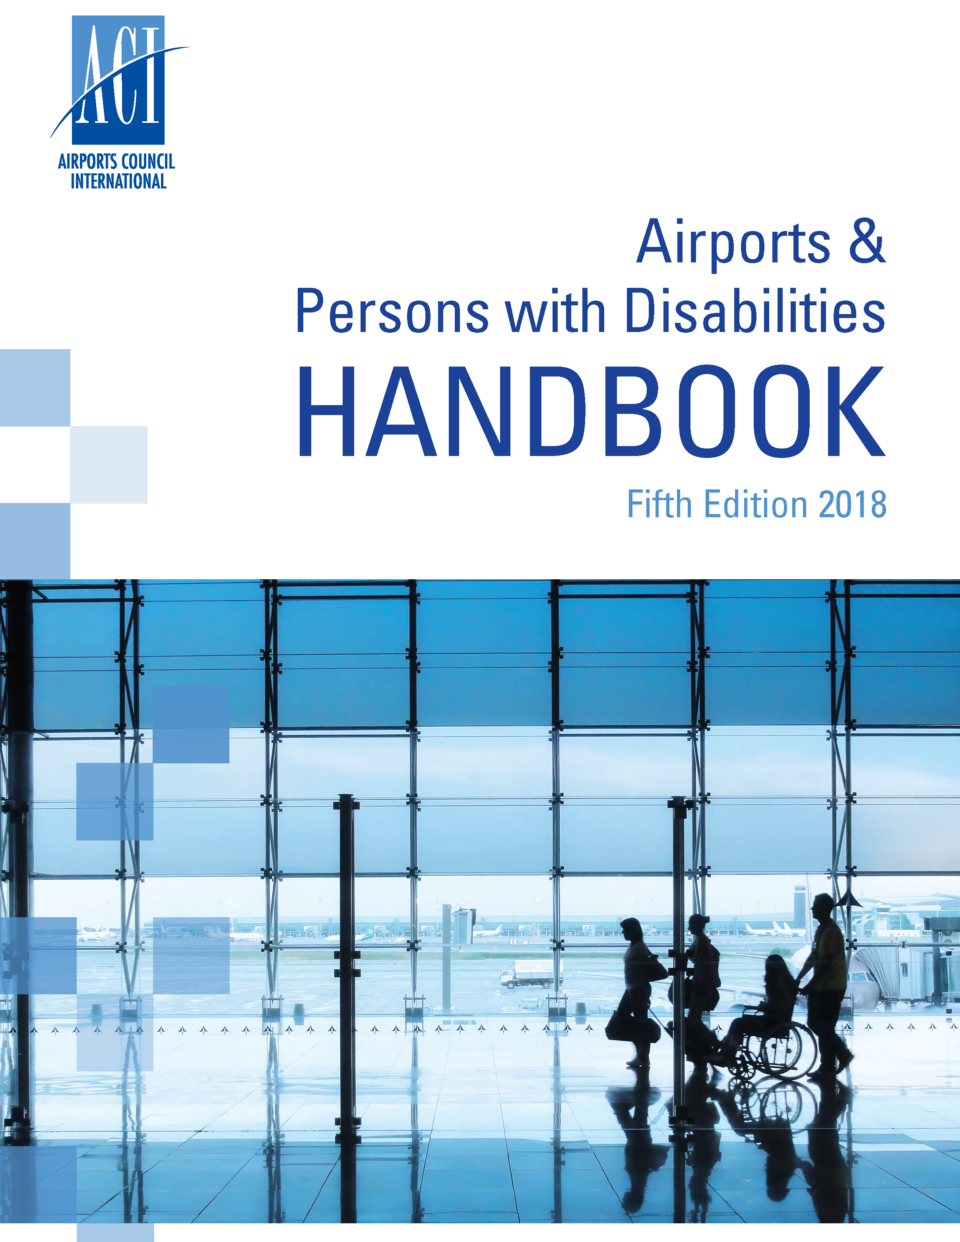 Discover the Airports and Persons with Disabilities 2018.